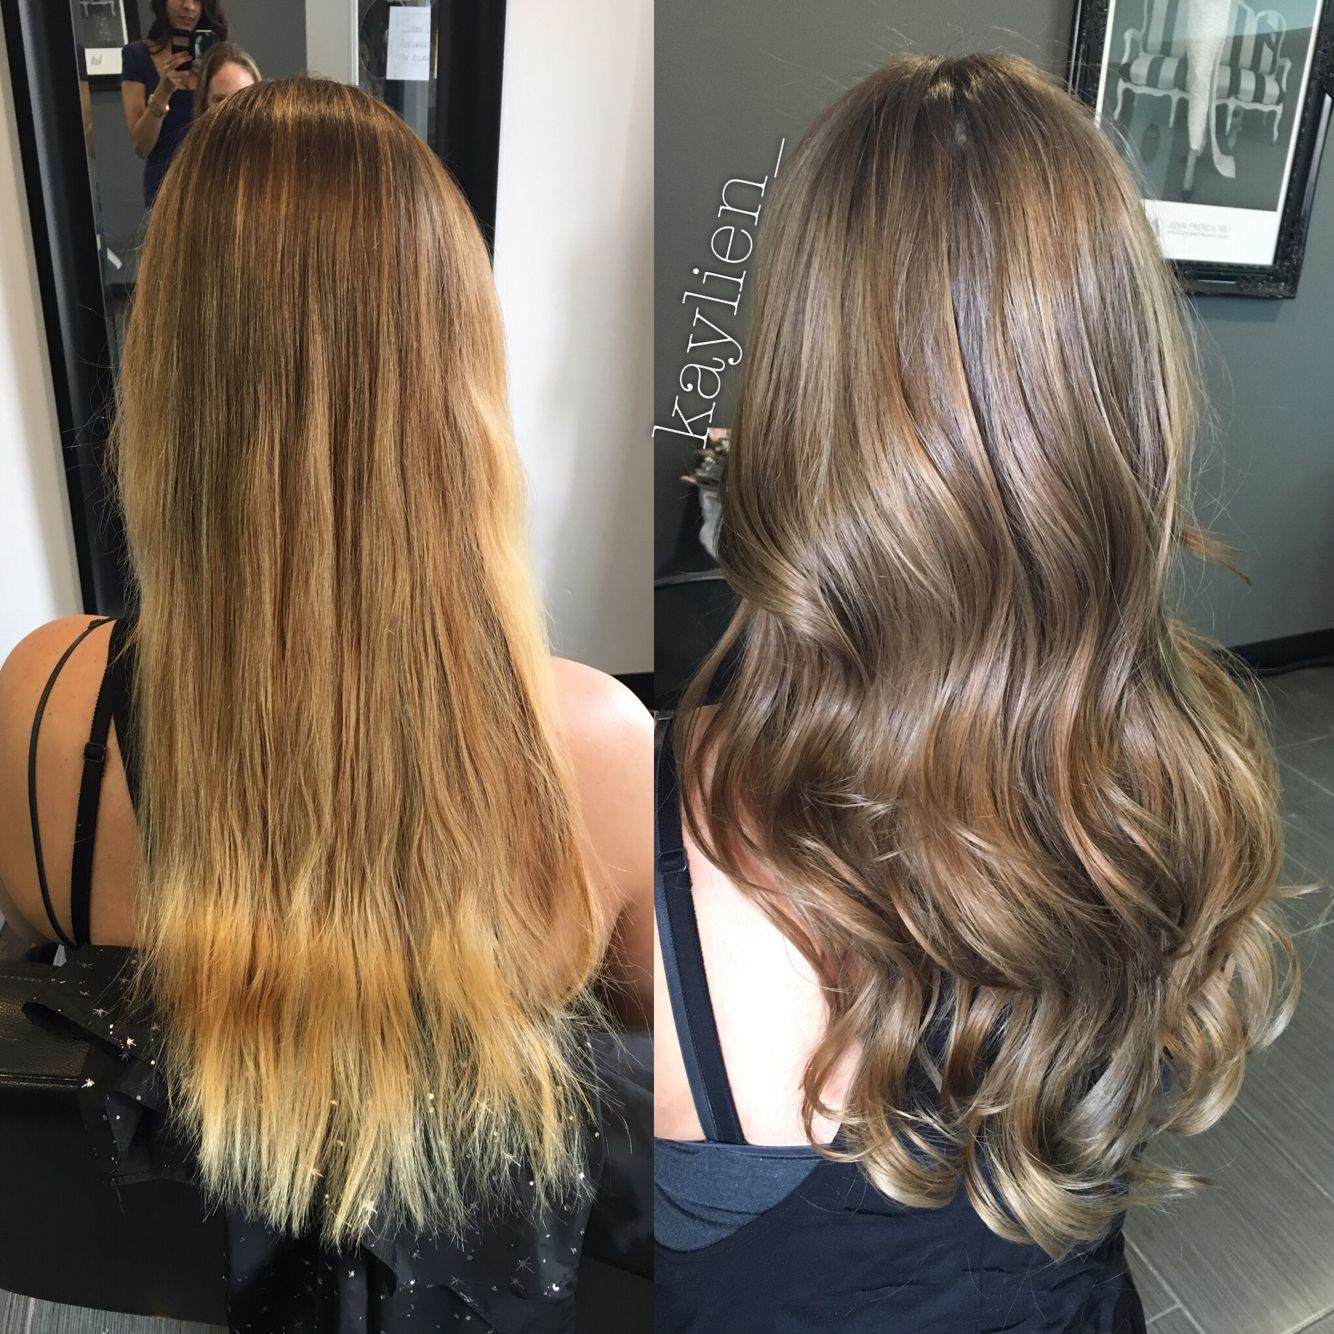 From Golden Blonde To A Natural Light Ash Brown Olaplex